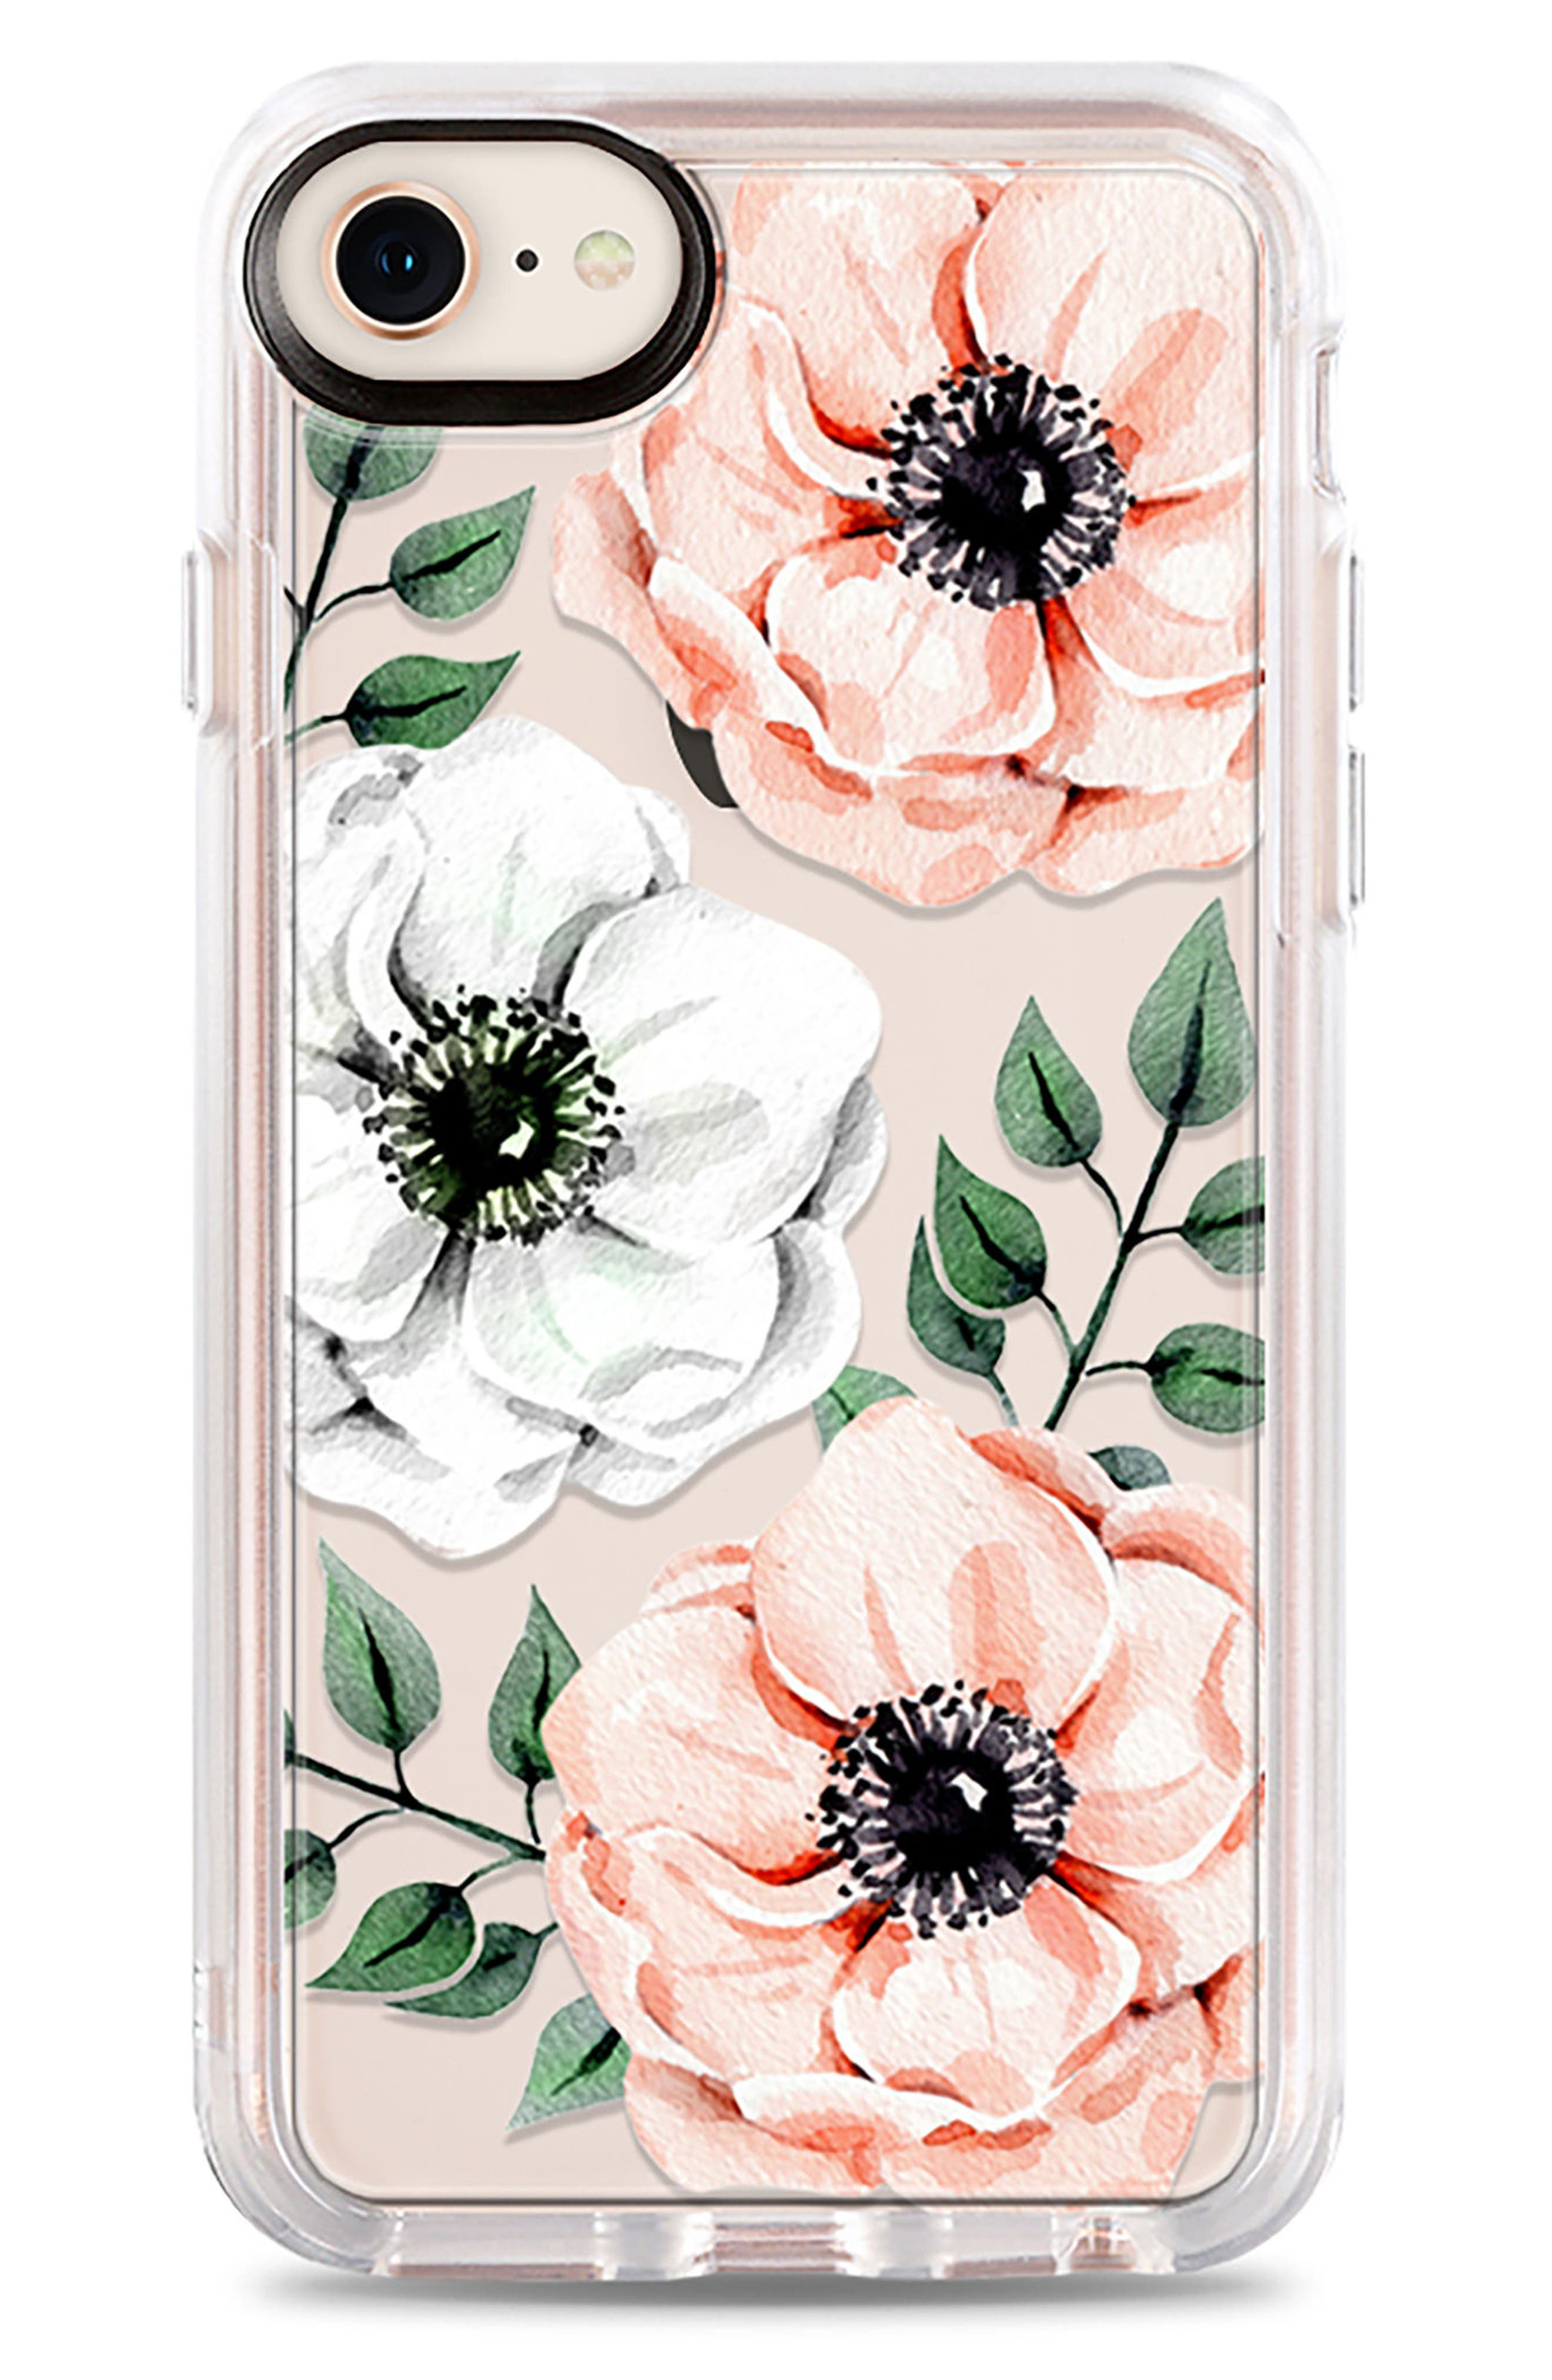 Watercolor Grip iPhone 7/8 & 7/8 Plus Case,                             Main thumbnail 1, color,                             PINK AND WHITE